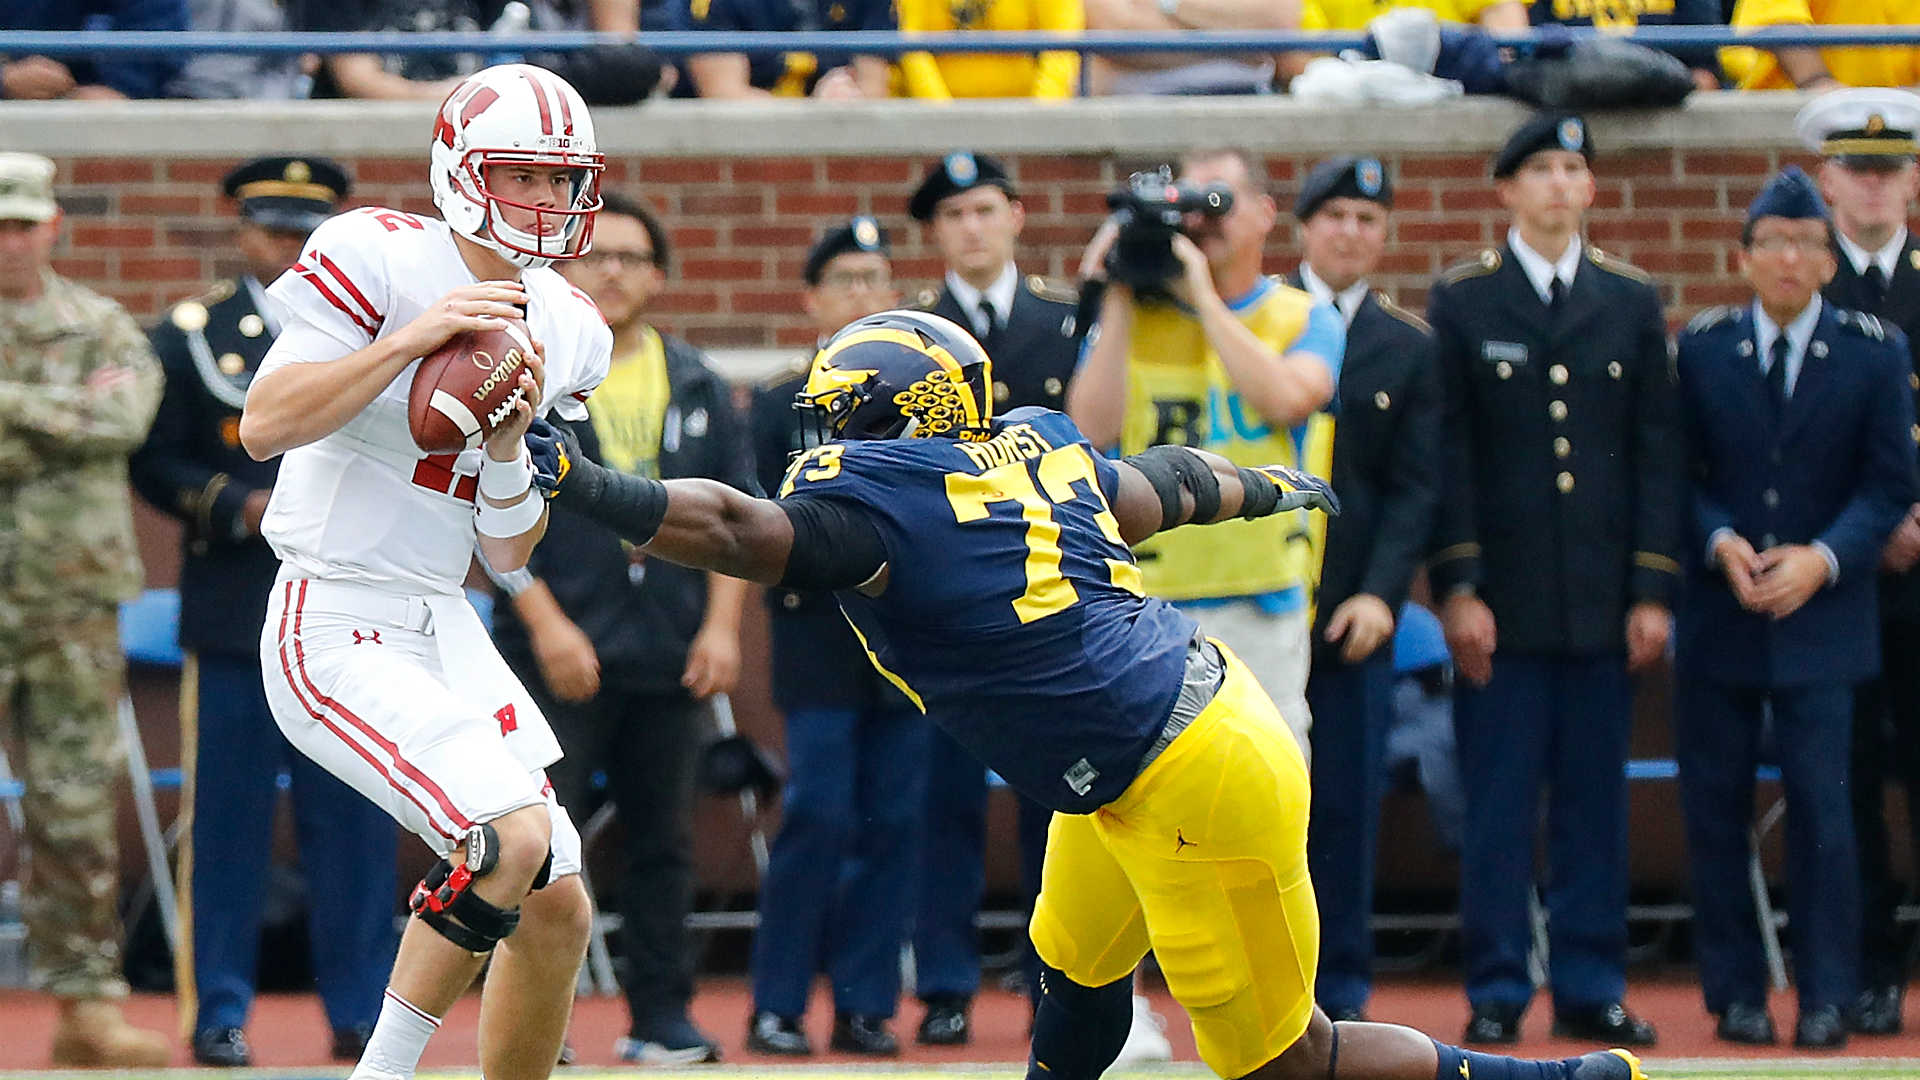 College football picks, Week 12: Wisconsin vs. Michigan has serious playoff implications